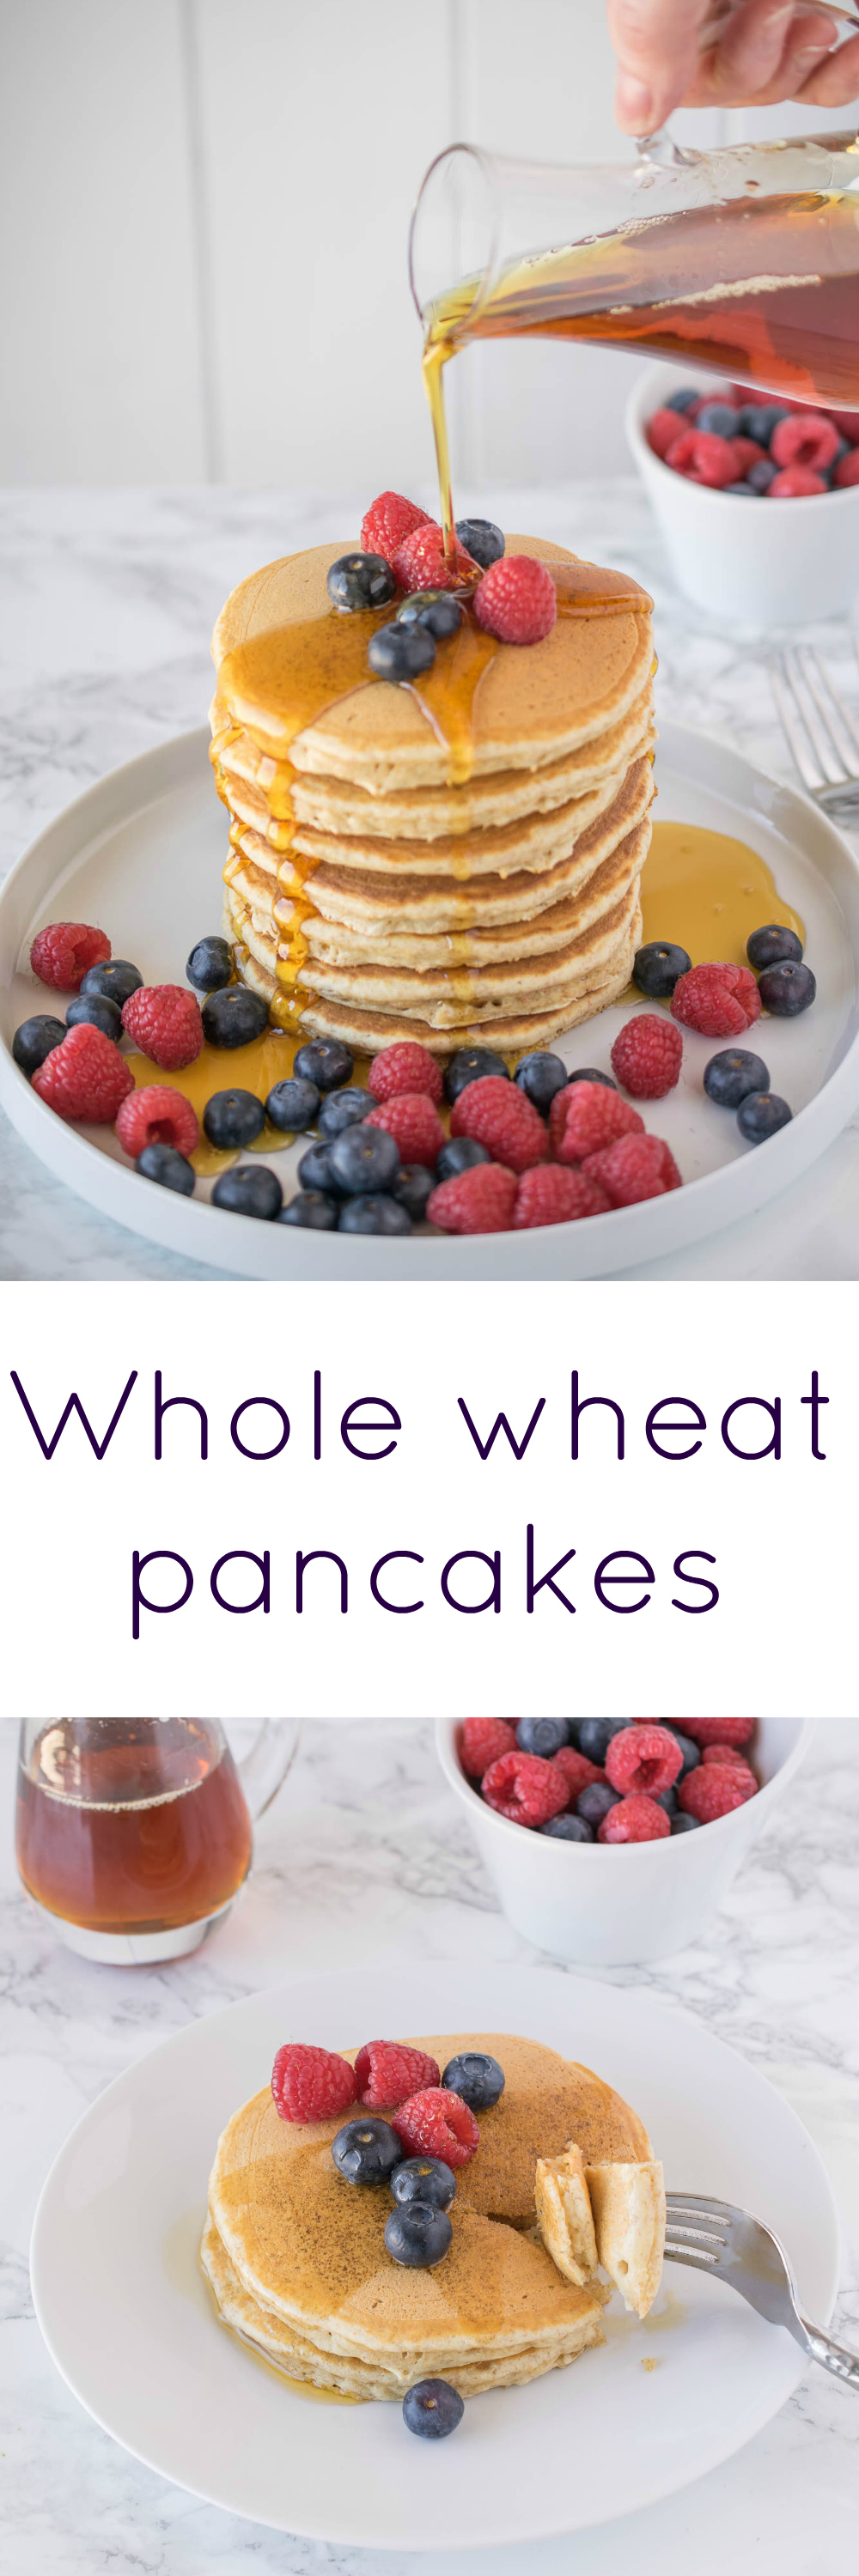 Whole wheat pancakes. Light, fluffy and moist with a little honey in the batter for sweetness.